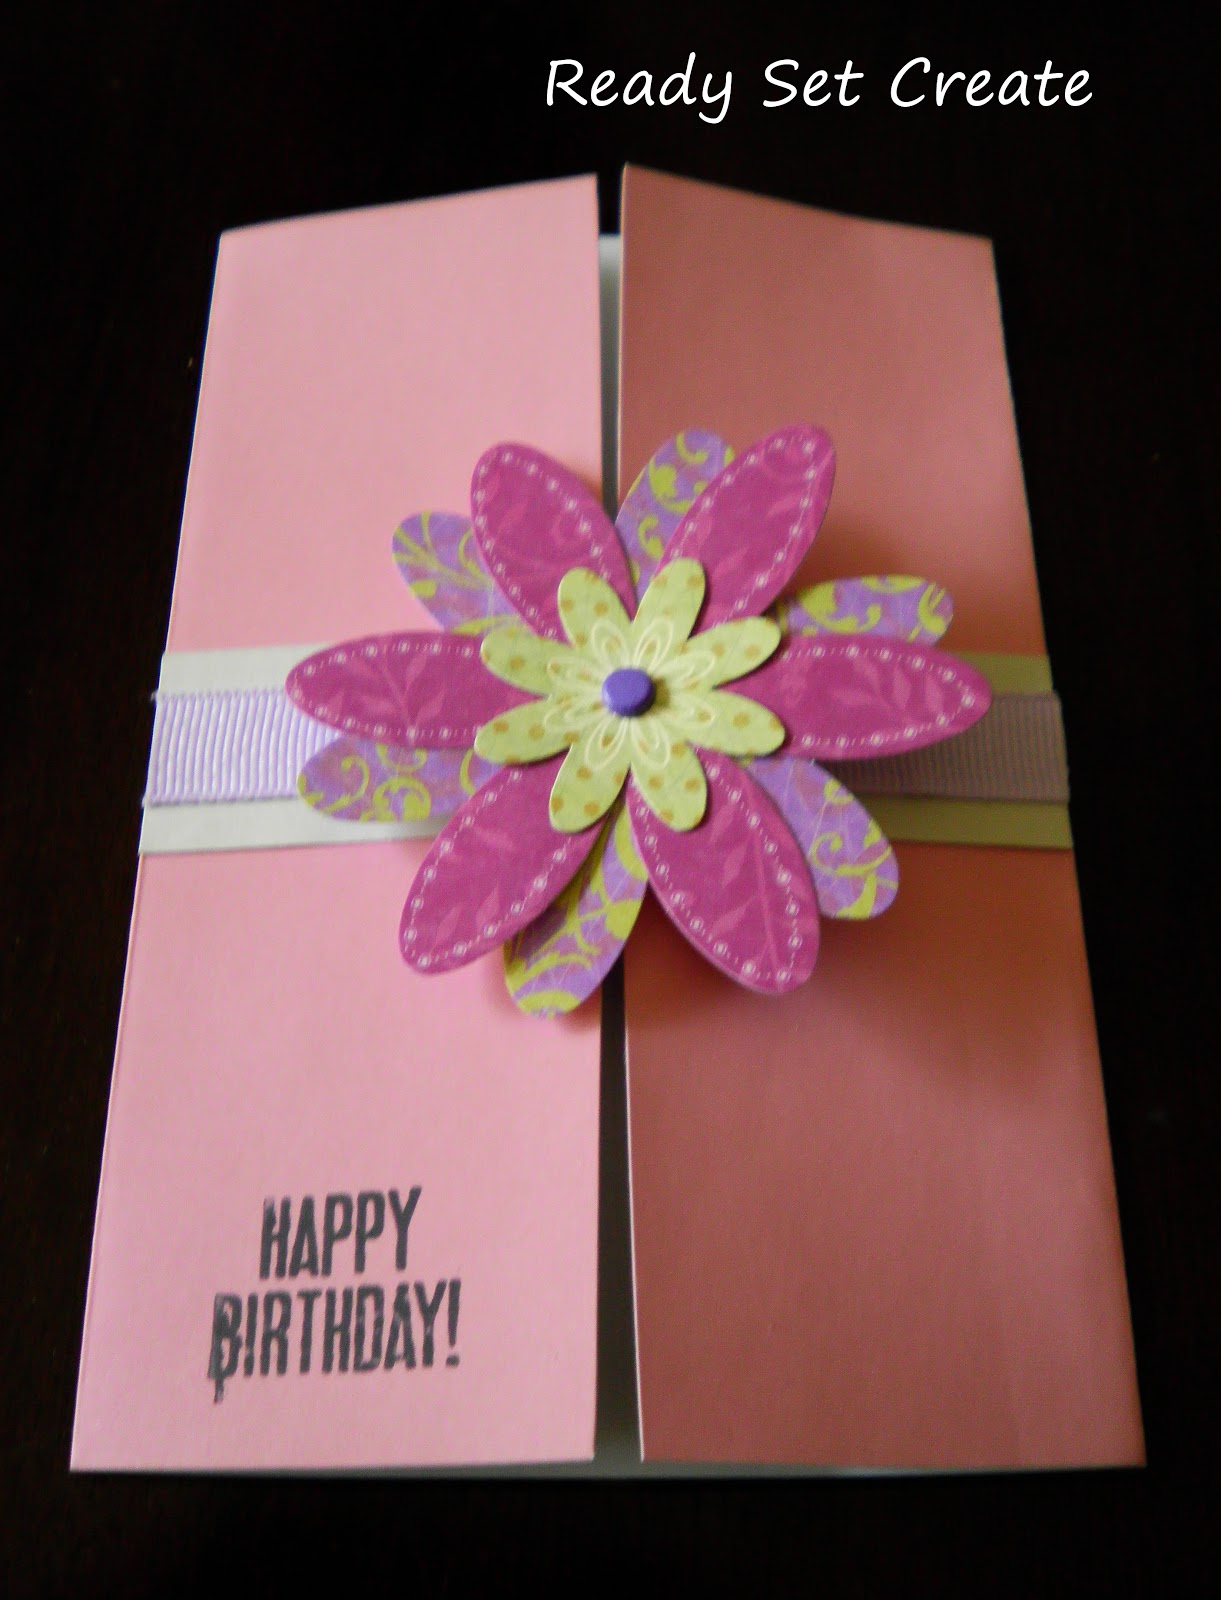 Homemade birthday card ideas for mom gangcraft ready set create spread some love with a cute card birthday card bookmarktalkfo Images